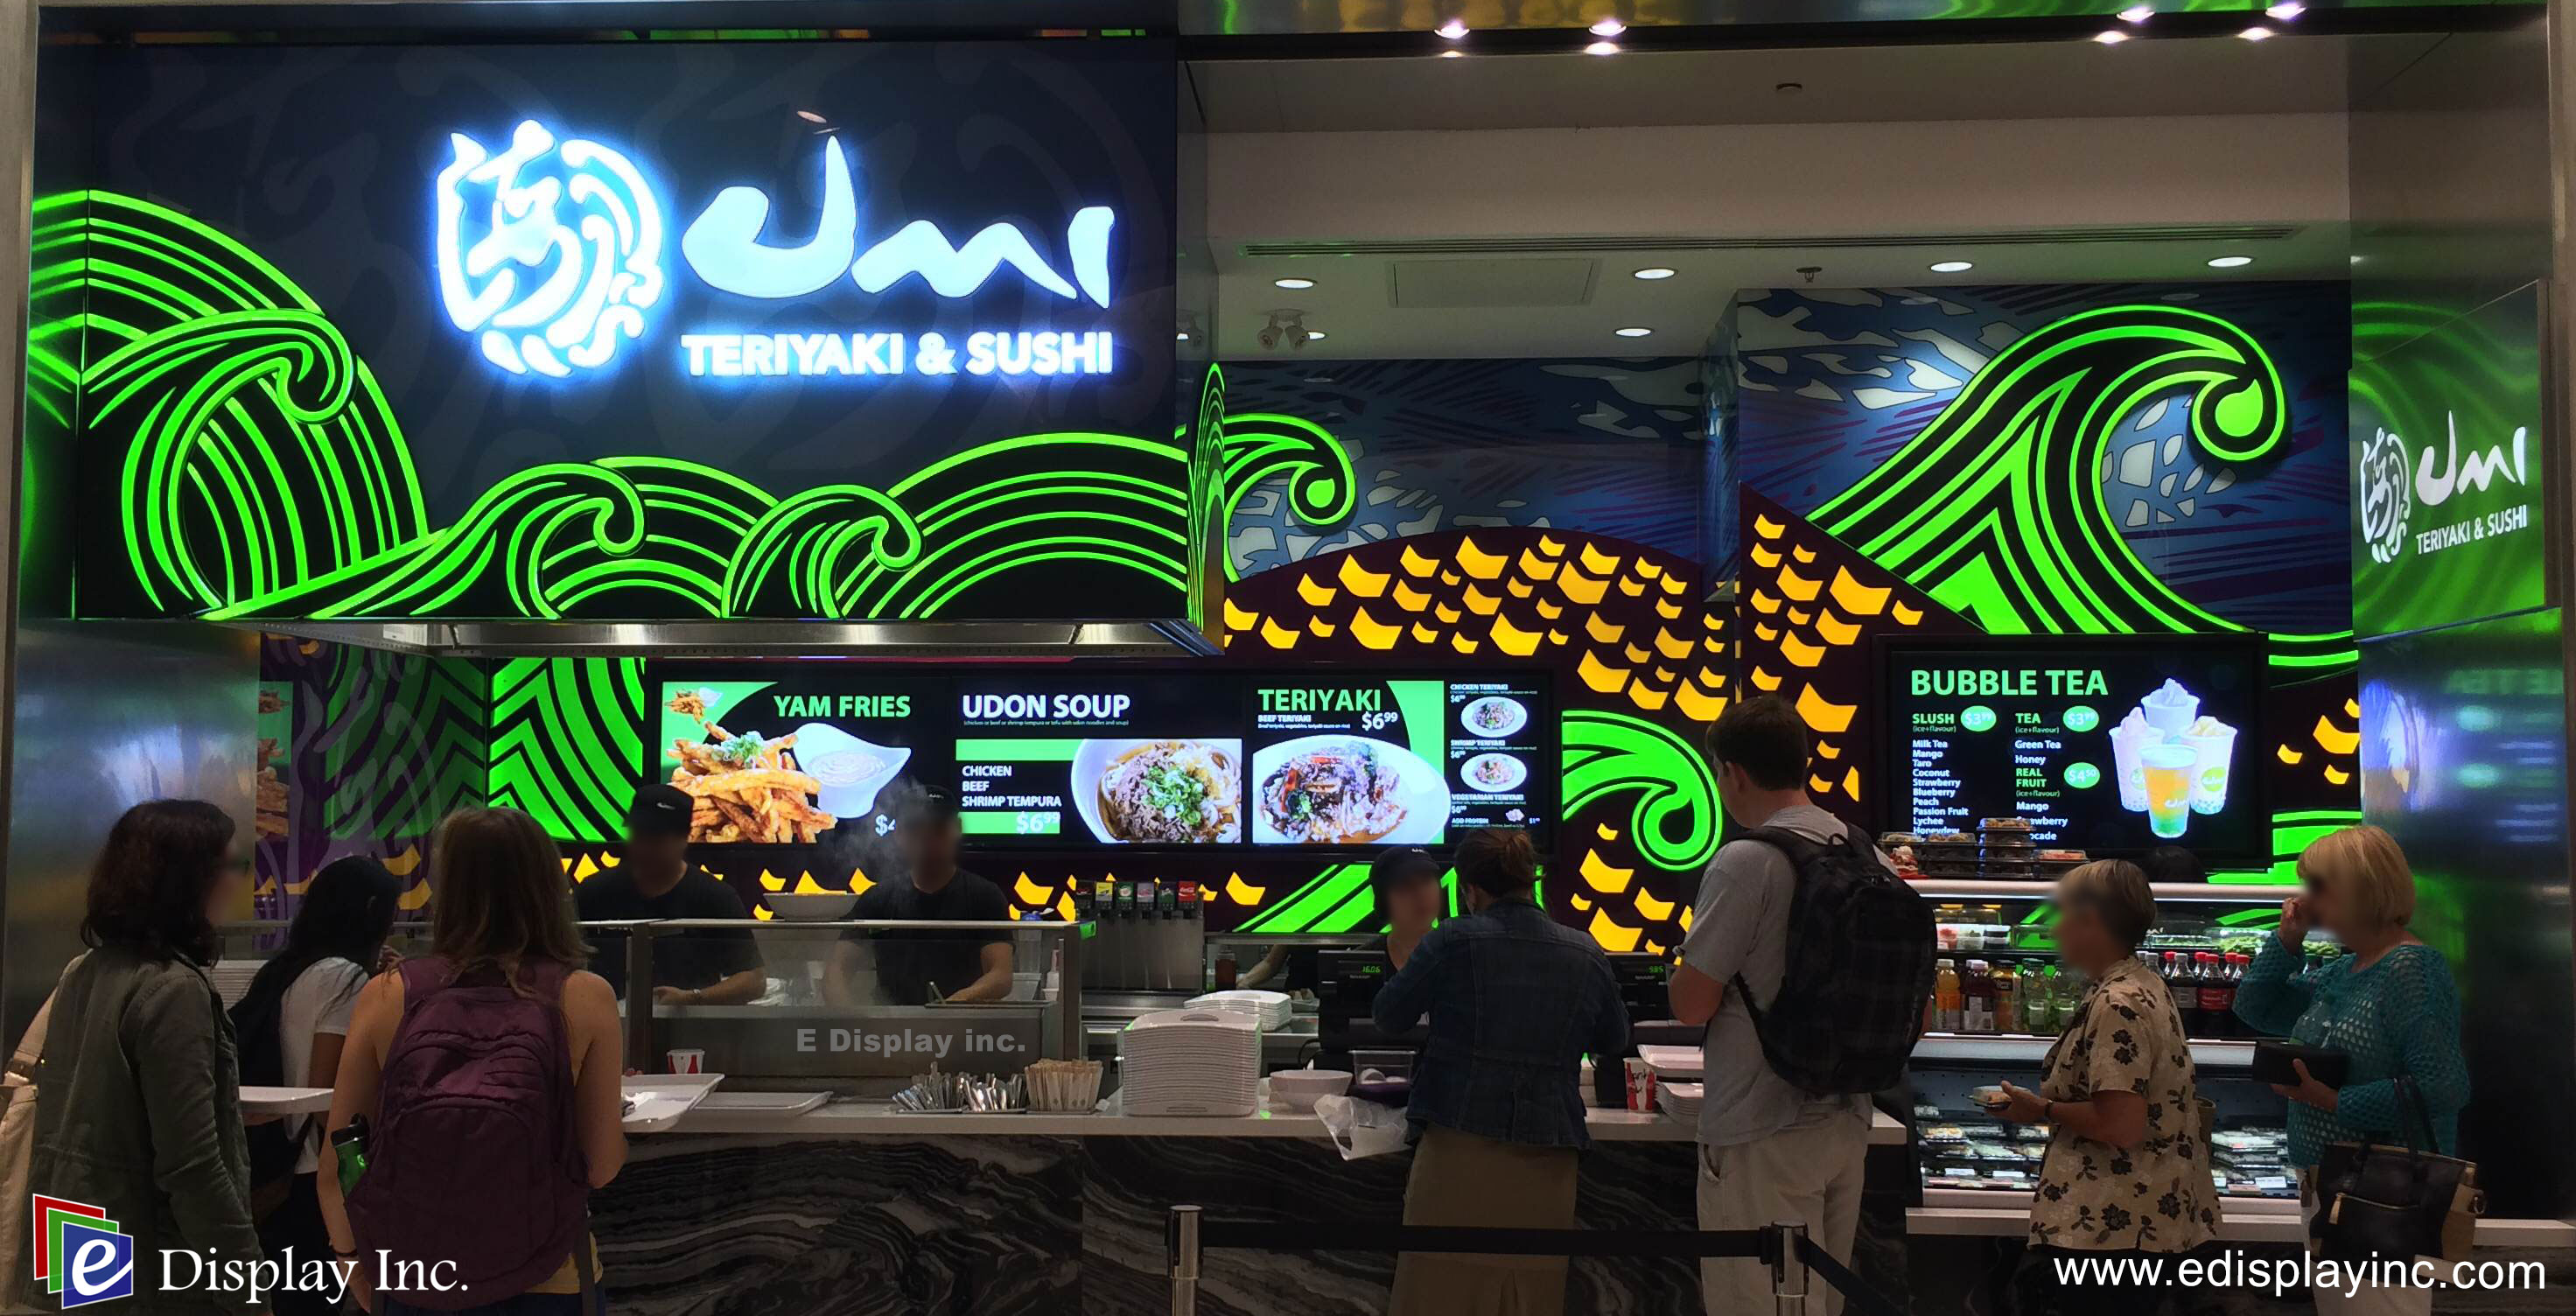 E Display Deploys Digital Menu Boards at Umi Teriyaki Sushi, Rideau Centre in Ottawa, Ontario.